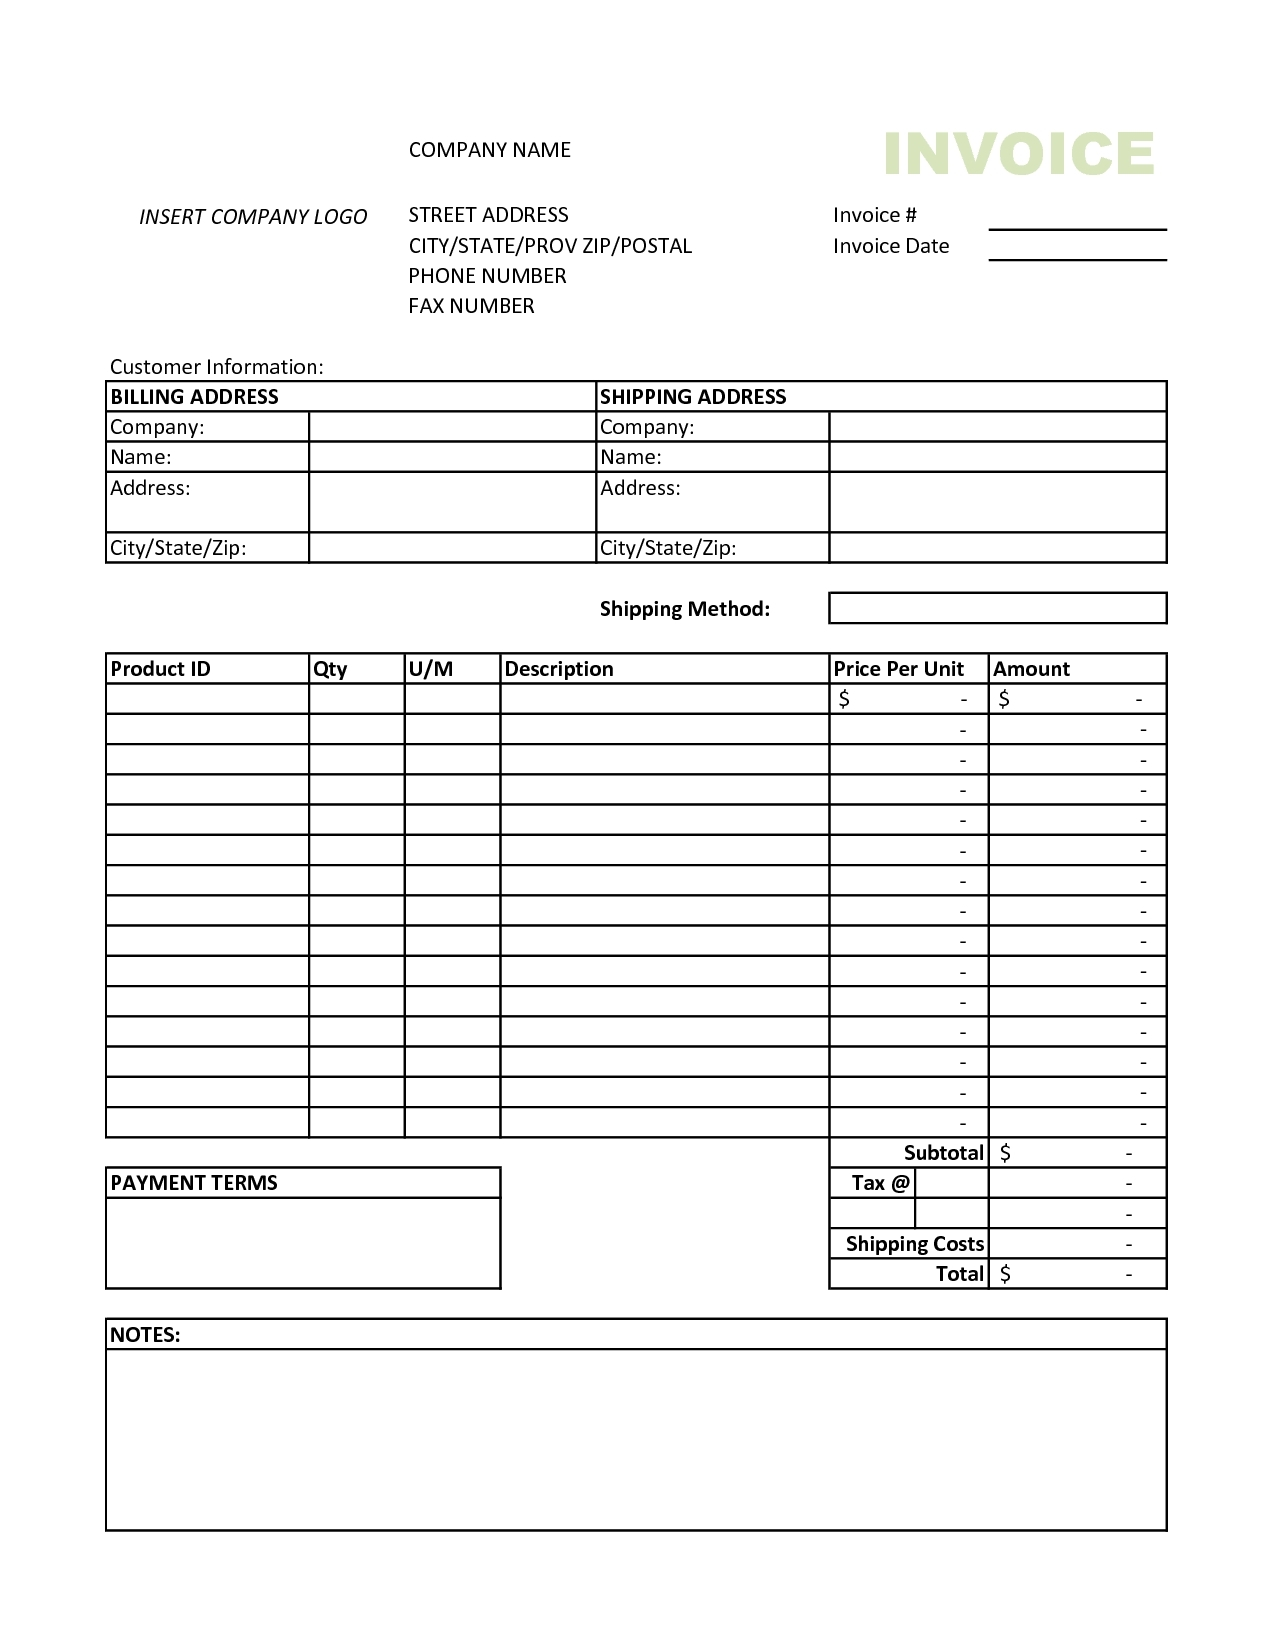 Invoice Template In Excel 2010